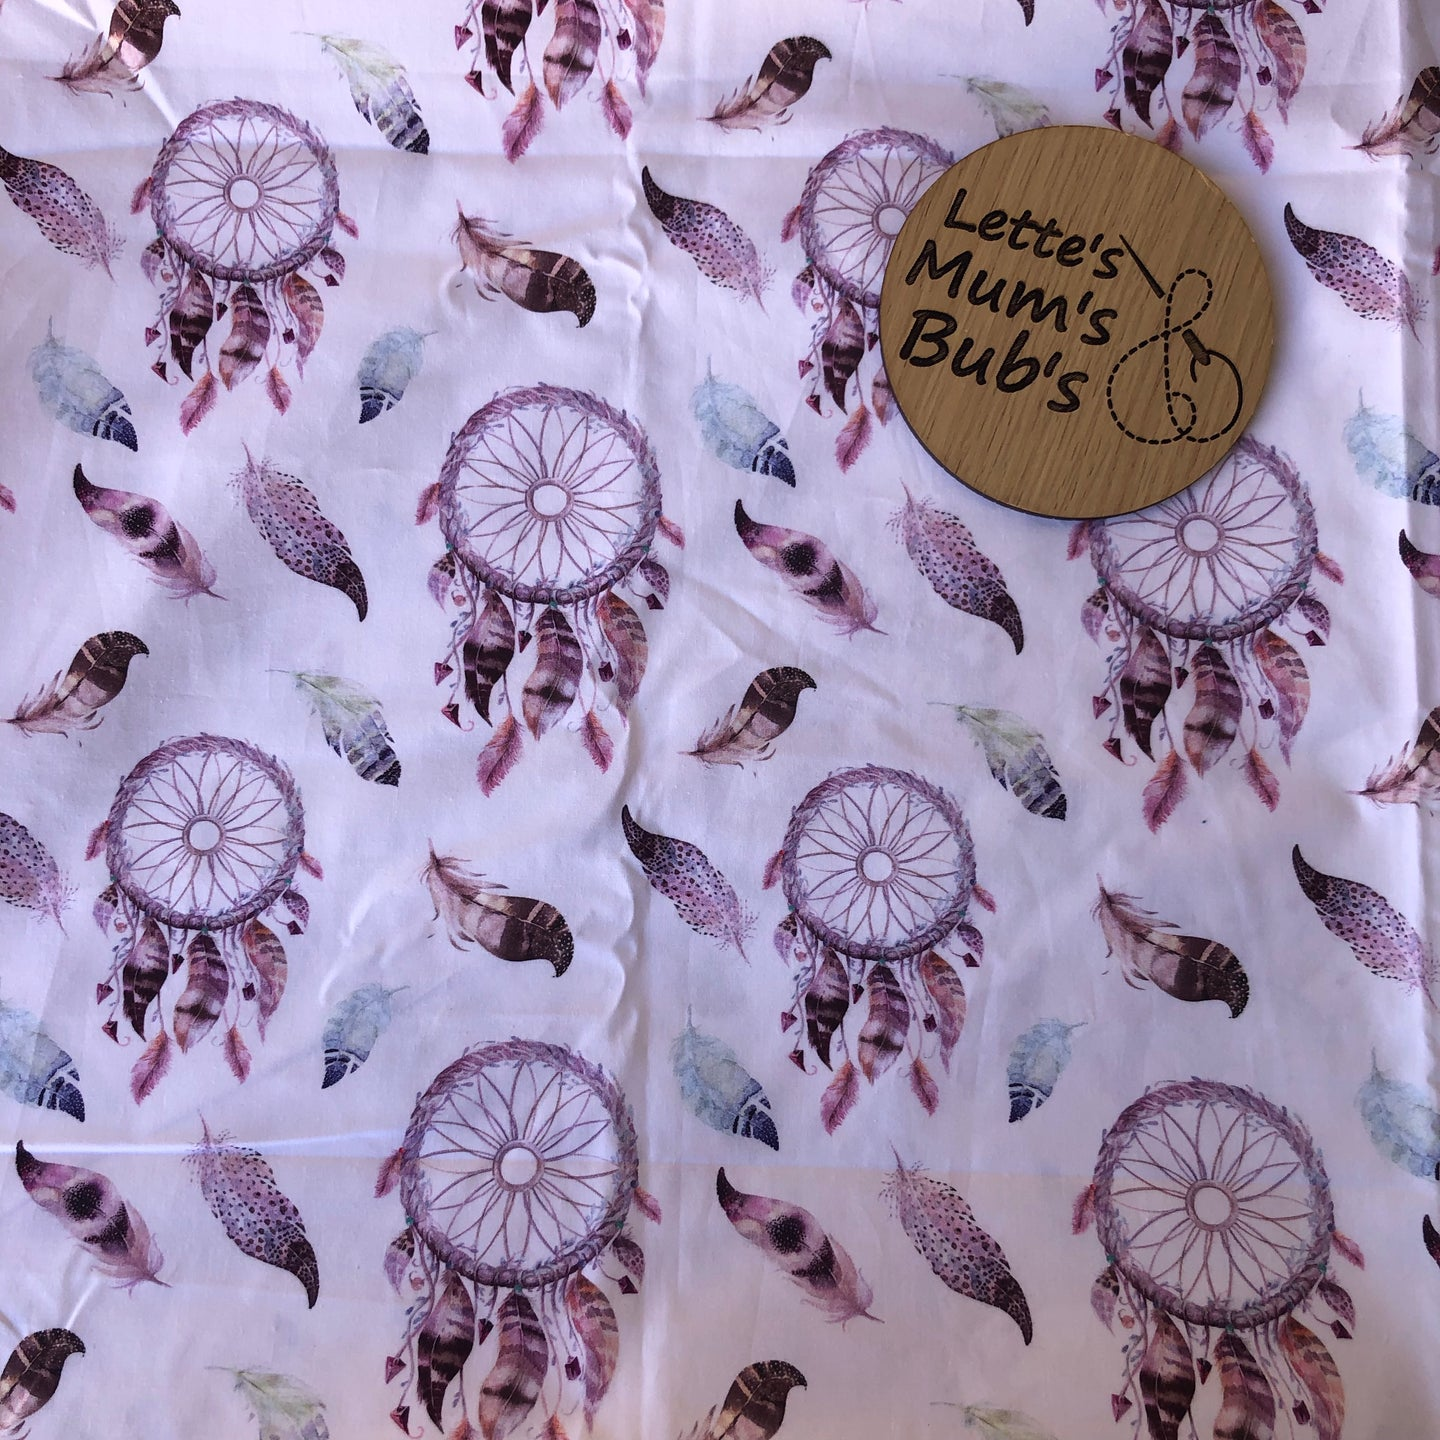 Dream Catchers White Taggie Comforter Blanket 30x30cm